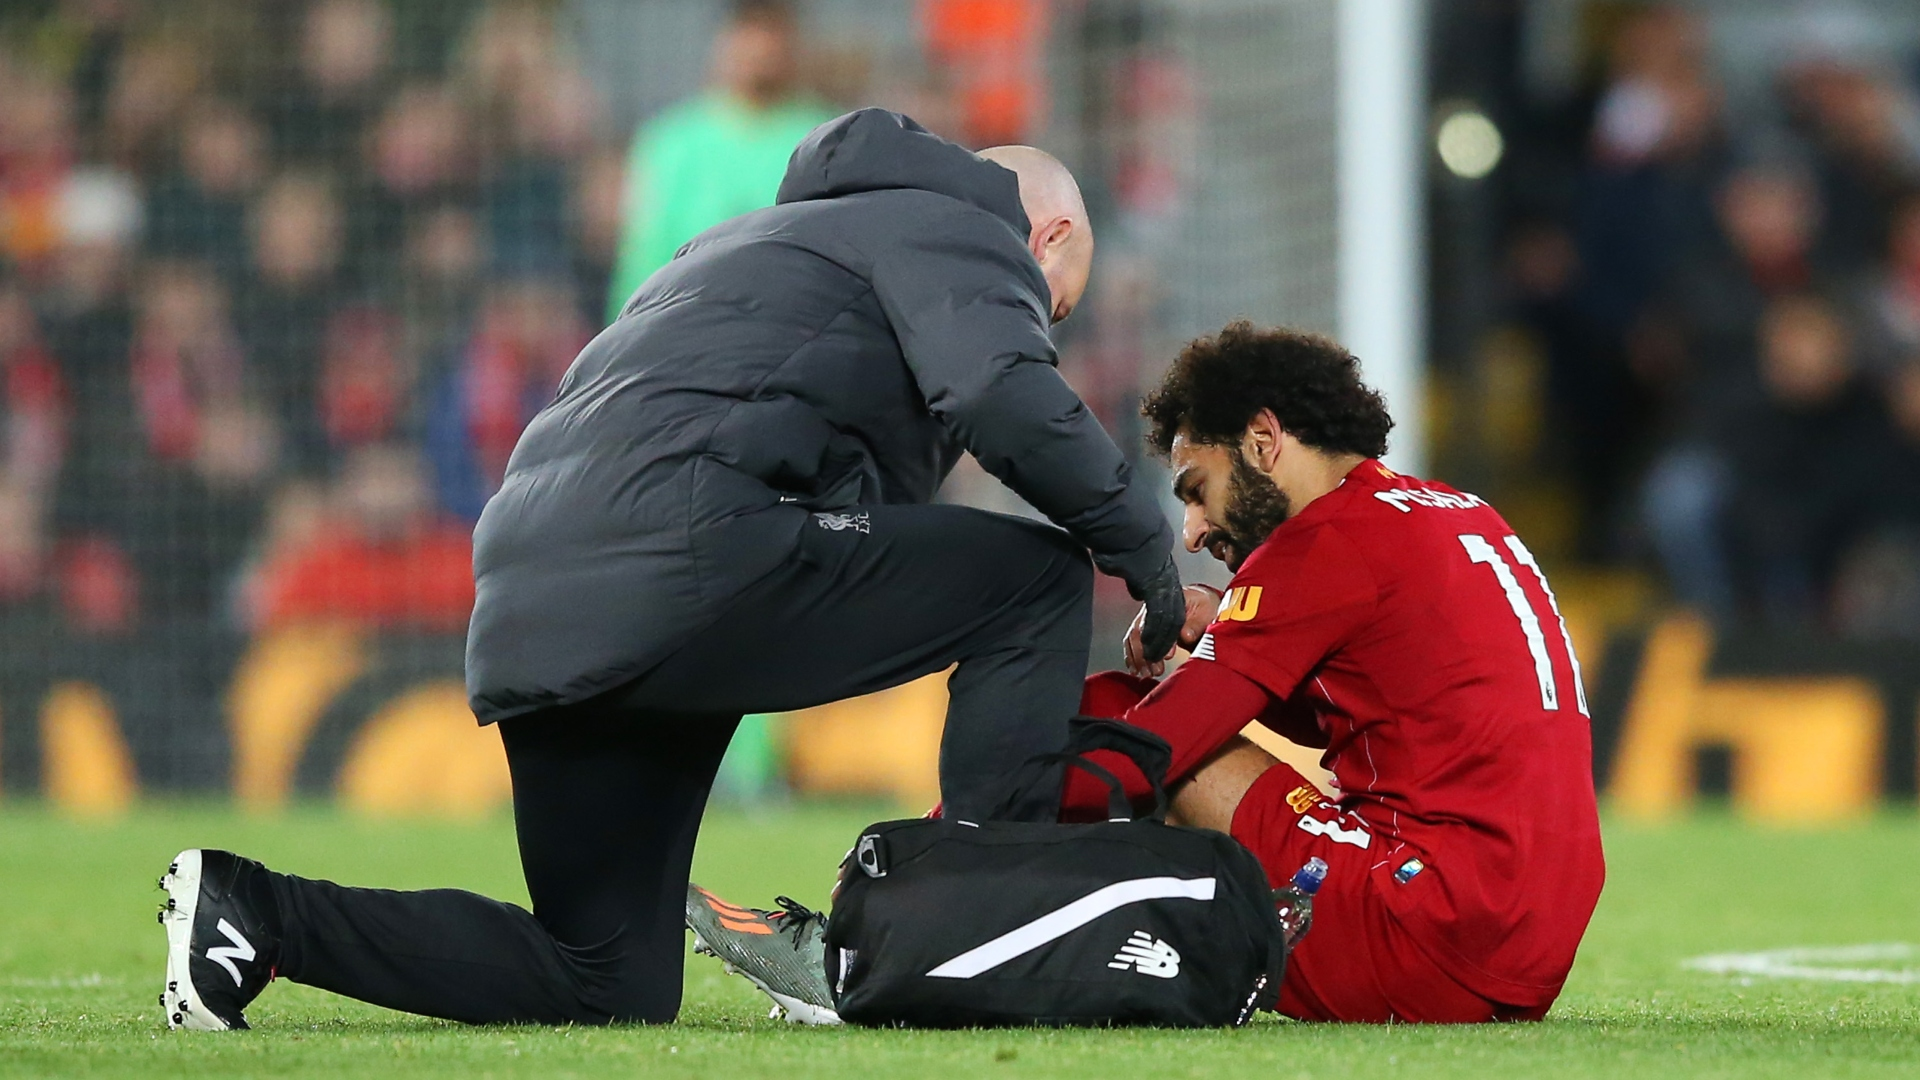 Salah doubtful for Liverpool clash against Crystal Palace